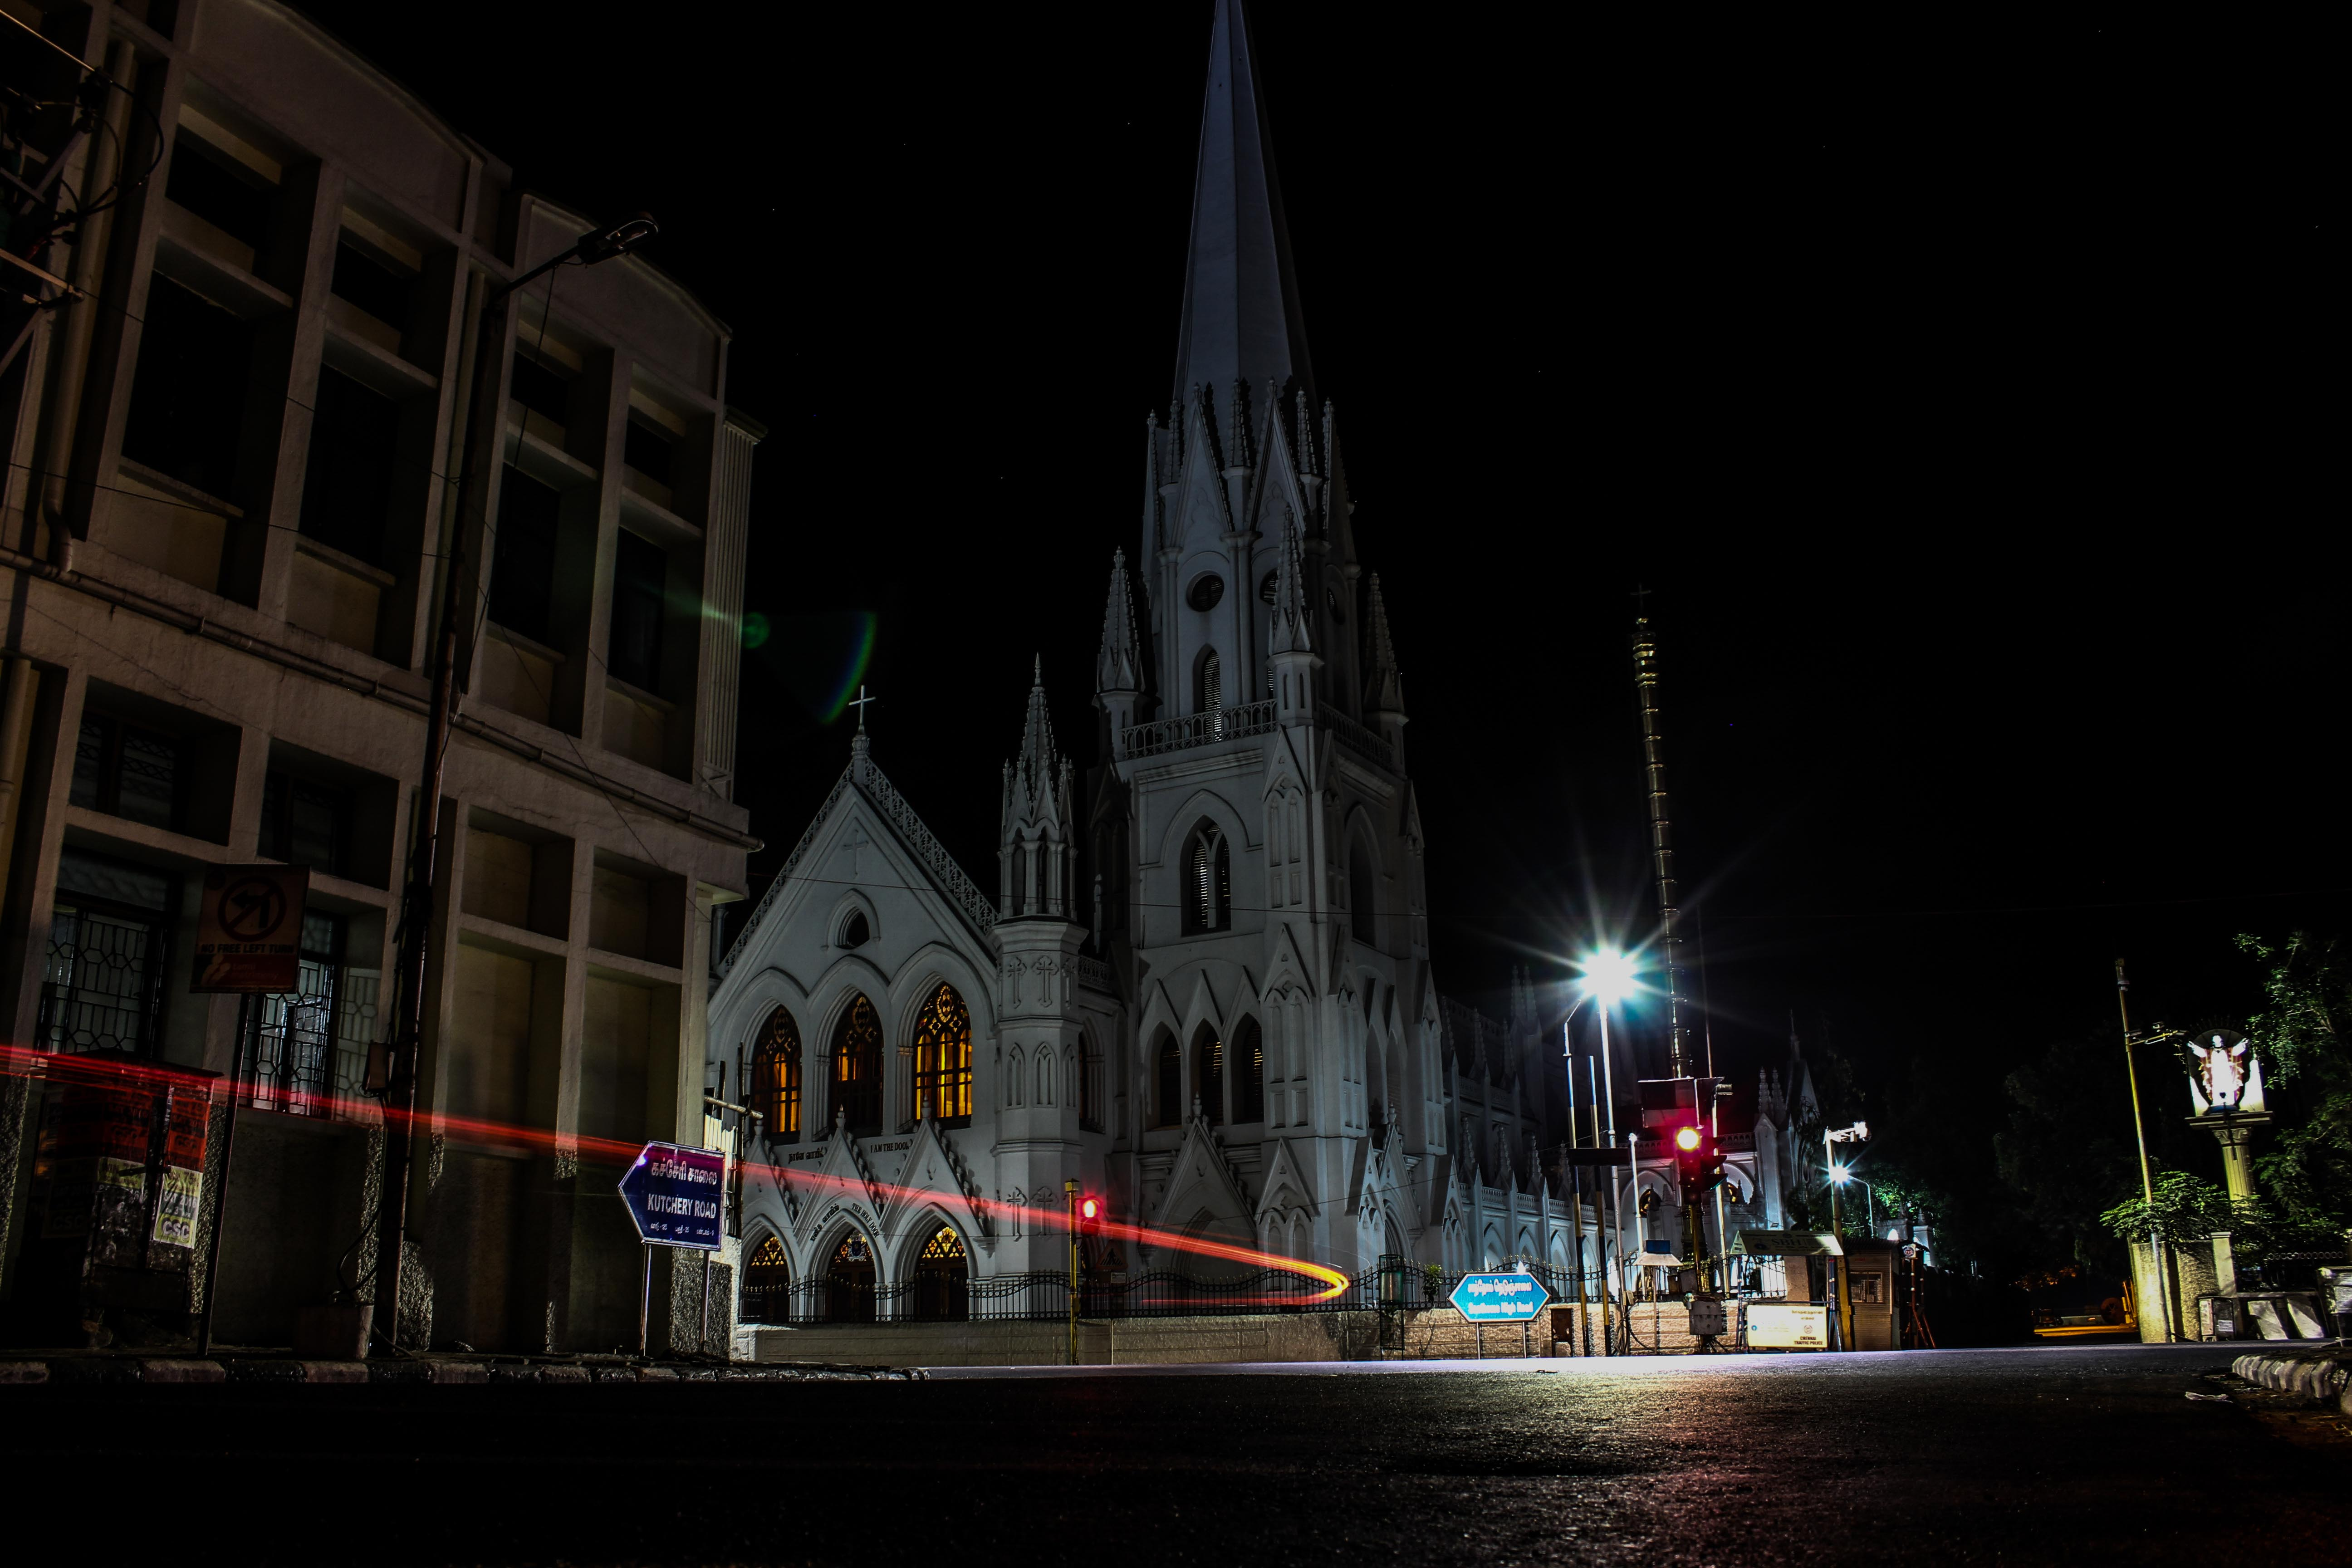 Santhome Church at night